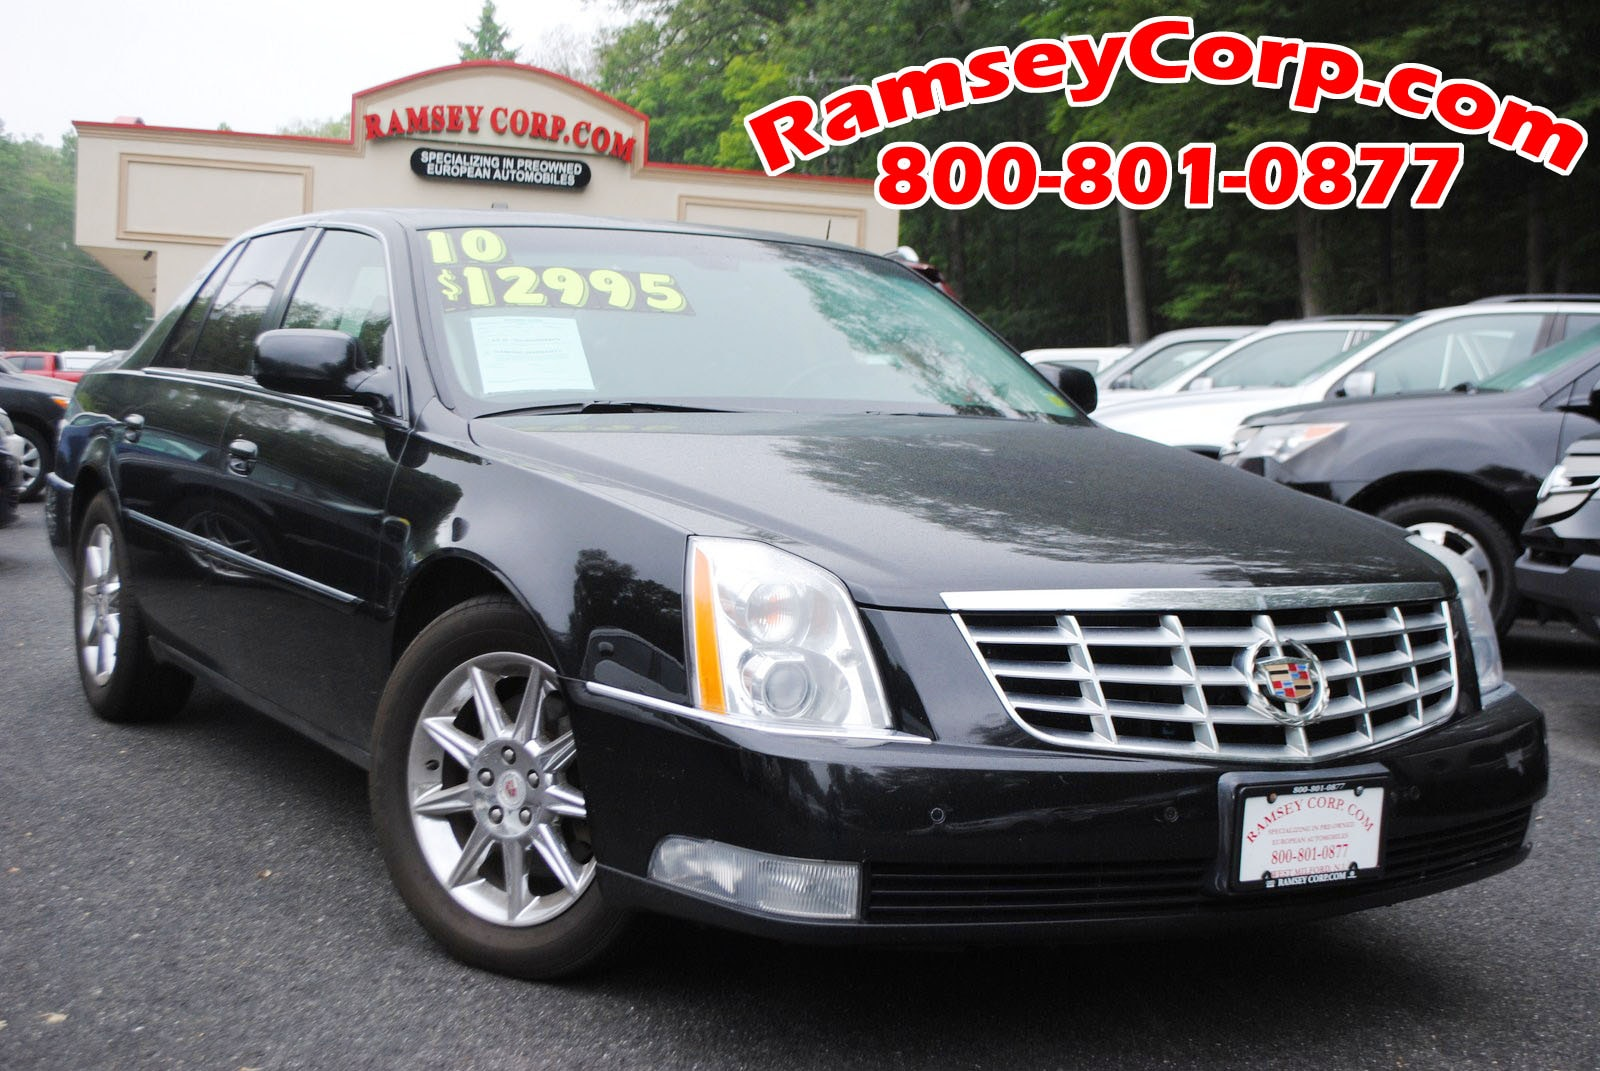 Cadillac 2006 cadillac deville : Used 2010 CADILLAC DTS For Sale | West Milford NJ